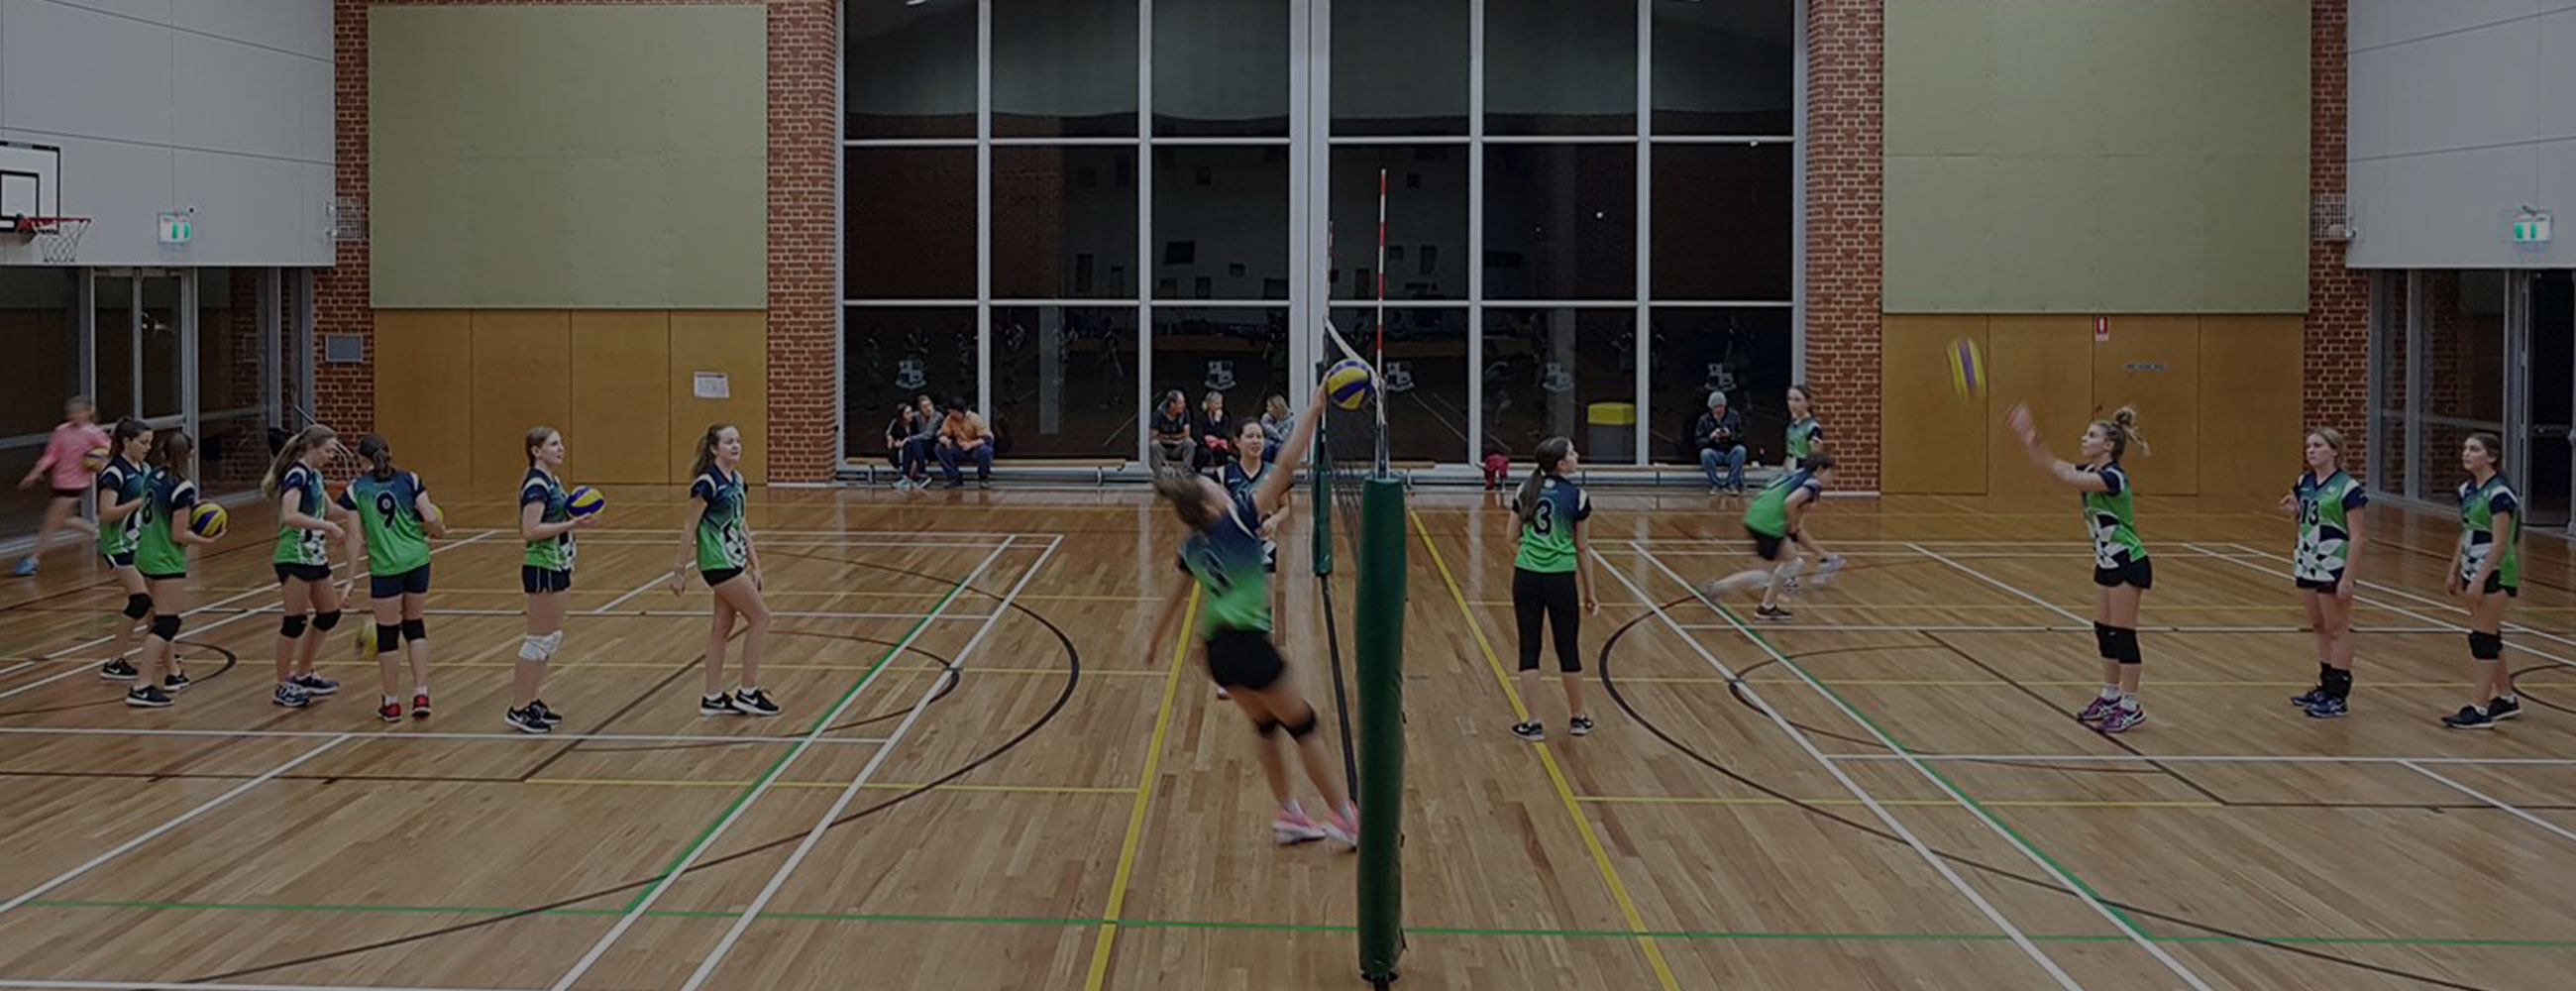 Southern Cross Volleyball Club - South Perth - Wesley College